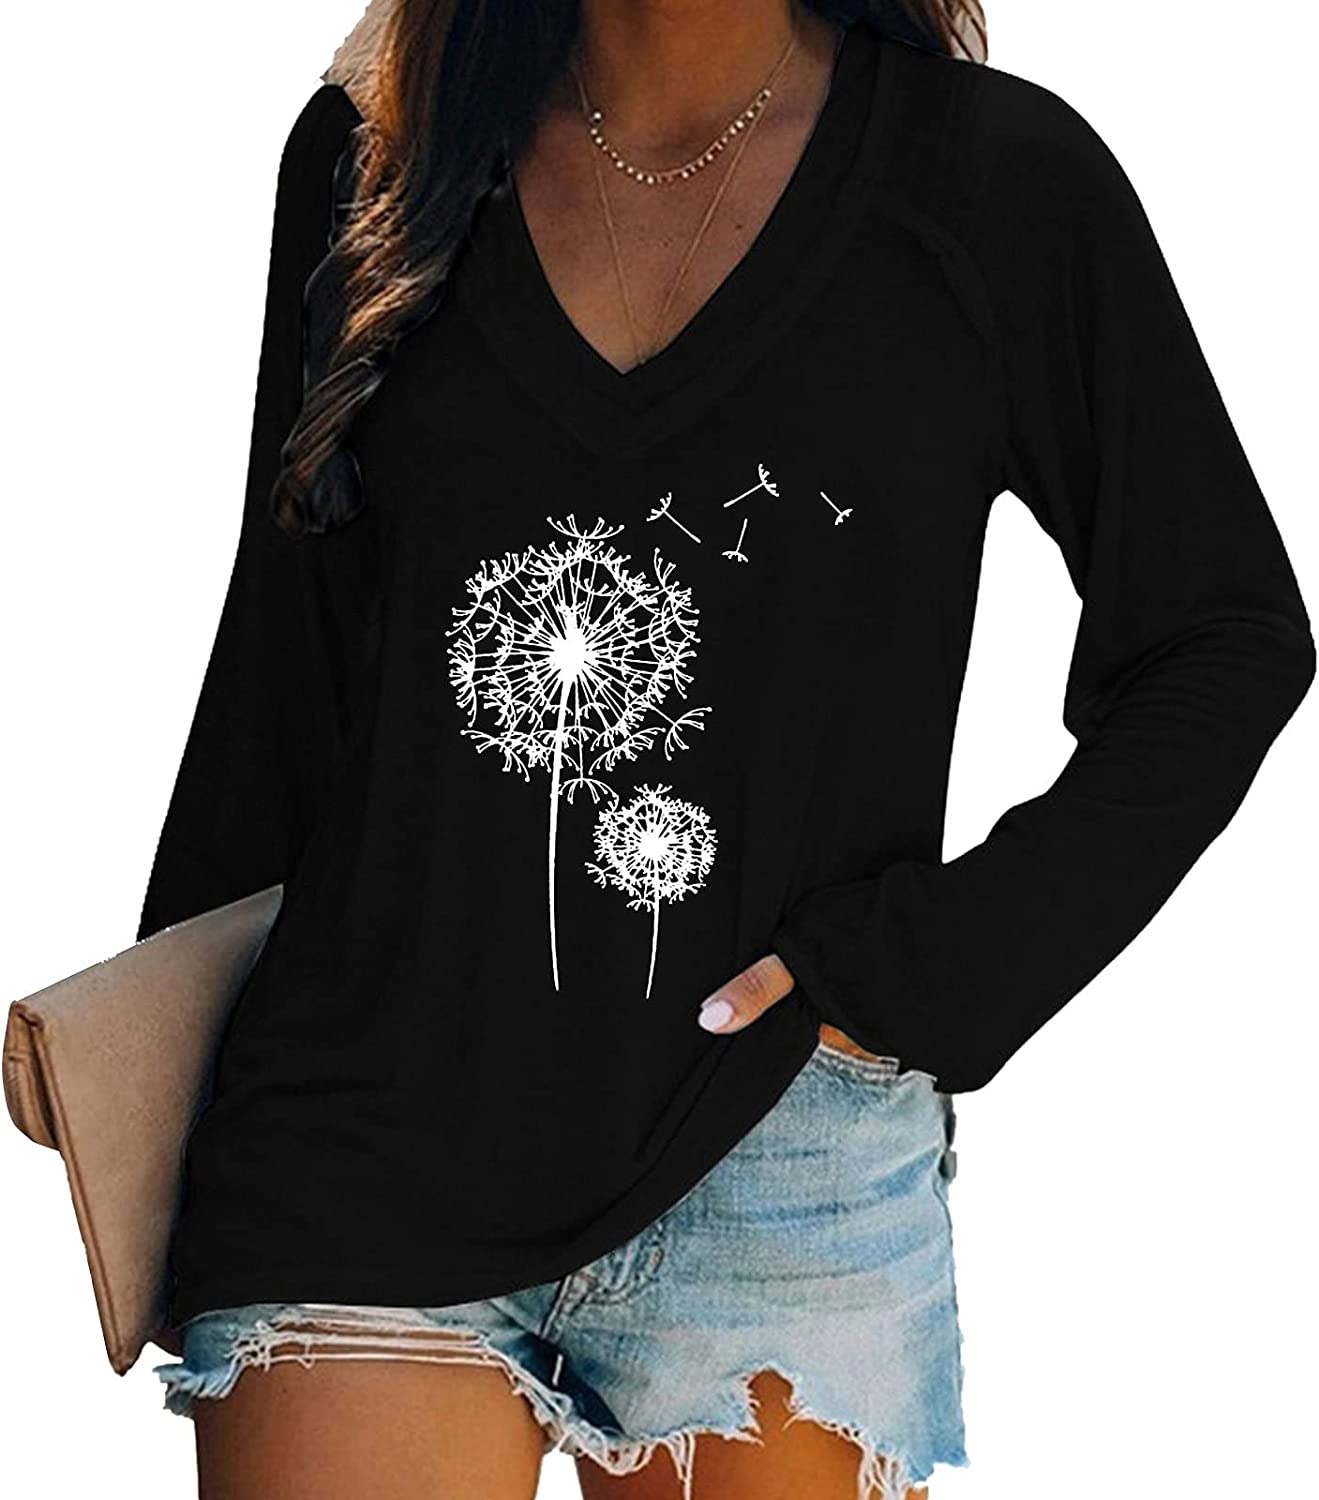 Aiouios Lightweight Sweatshirts for Women Graphic V-Neck Casual Long Sleeve Pullover Solid Color Dandelion Print Blouses